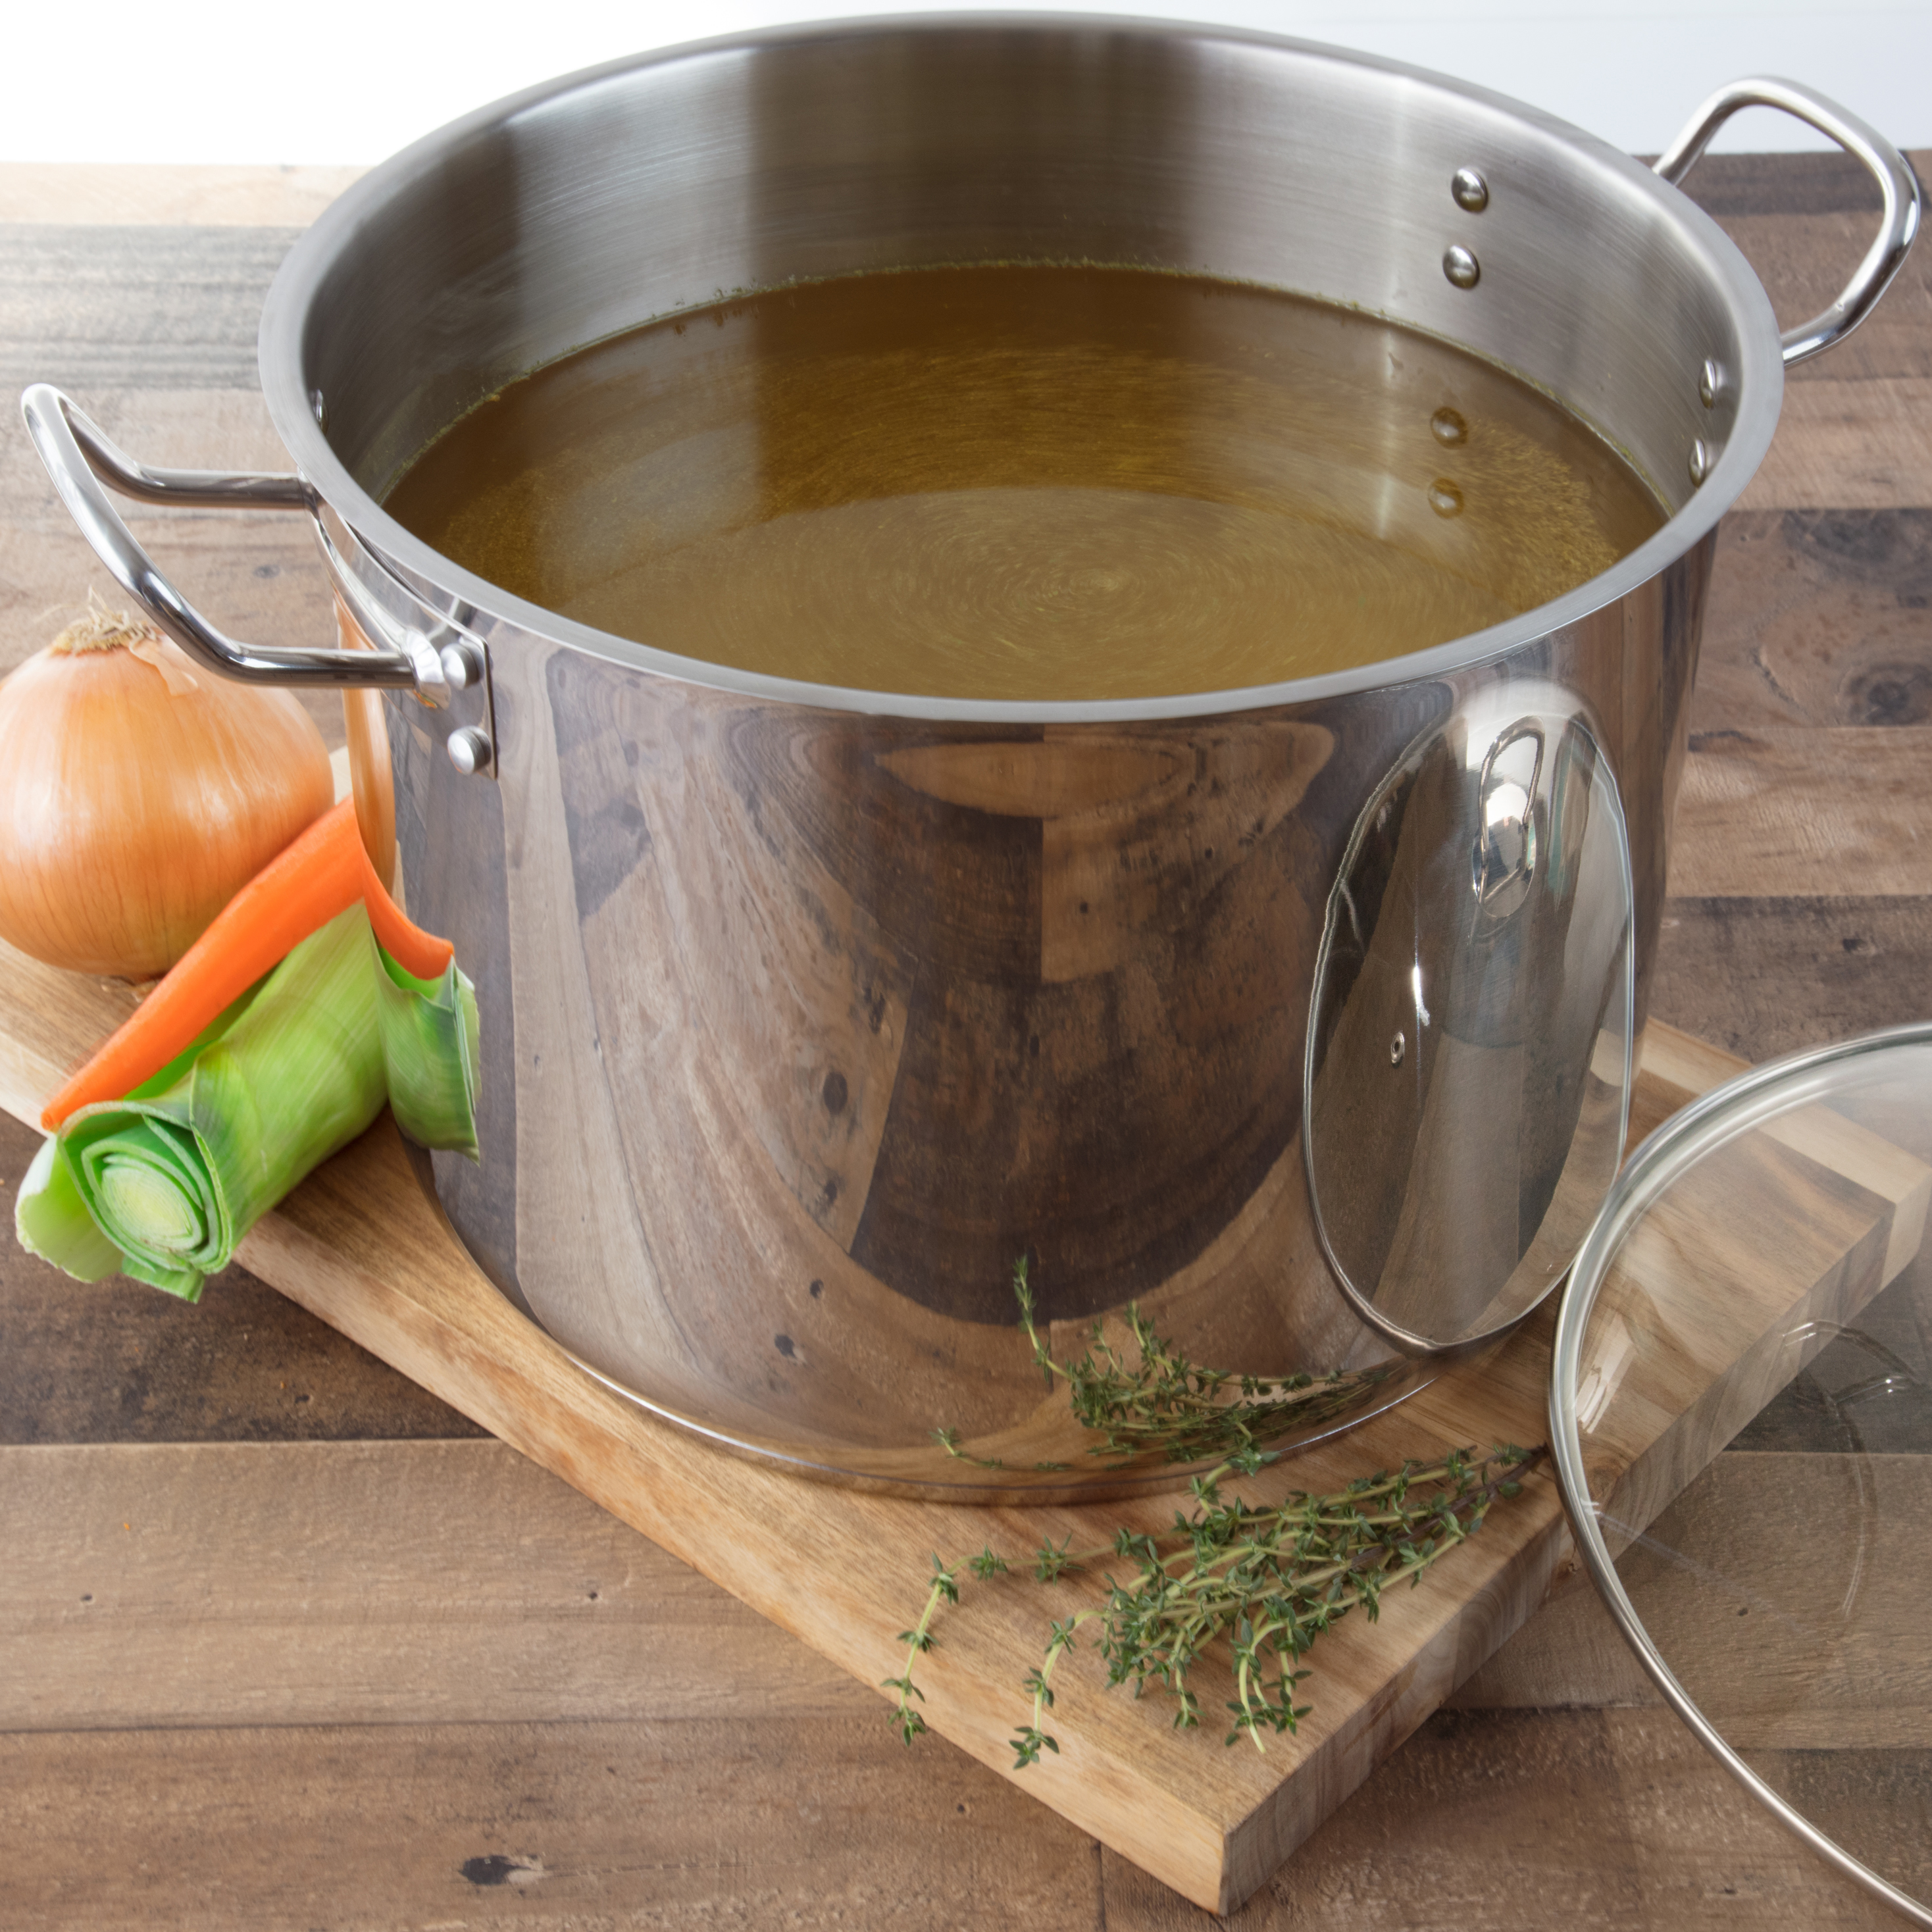 24 Quart Tri Ply Stainless Steel Stockpot W Cover